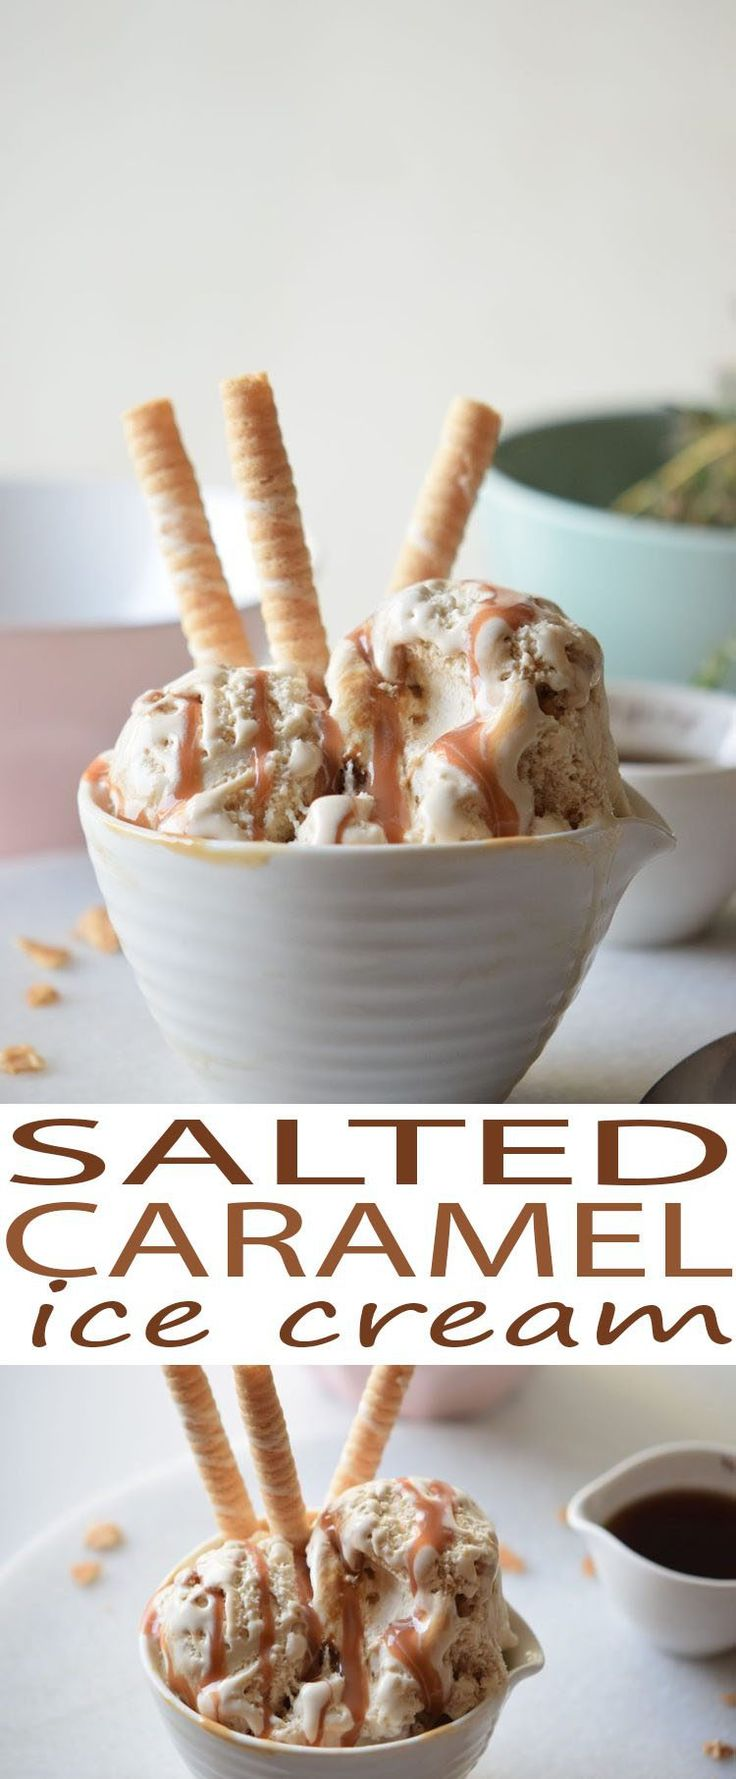 You'll want to try this Salted Caramel Homemade Ice Cream made with coconut milk. Homemade ice cream recipe that is easy to make at home and is easy for kids to help make.